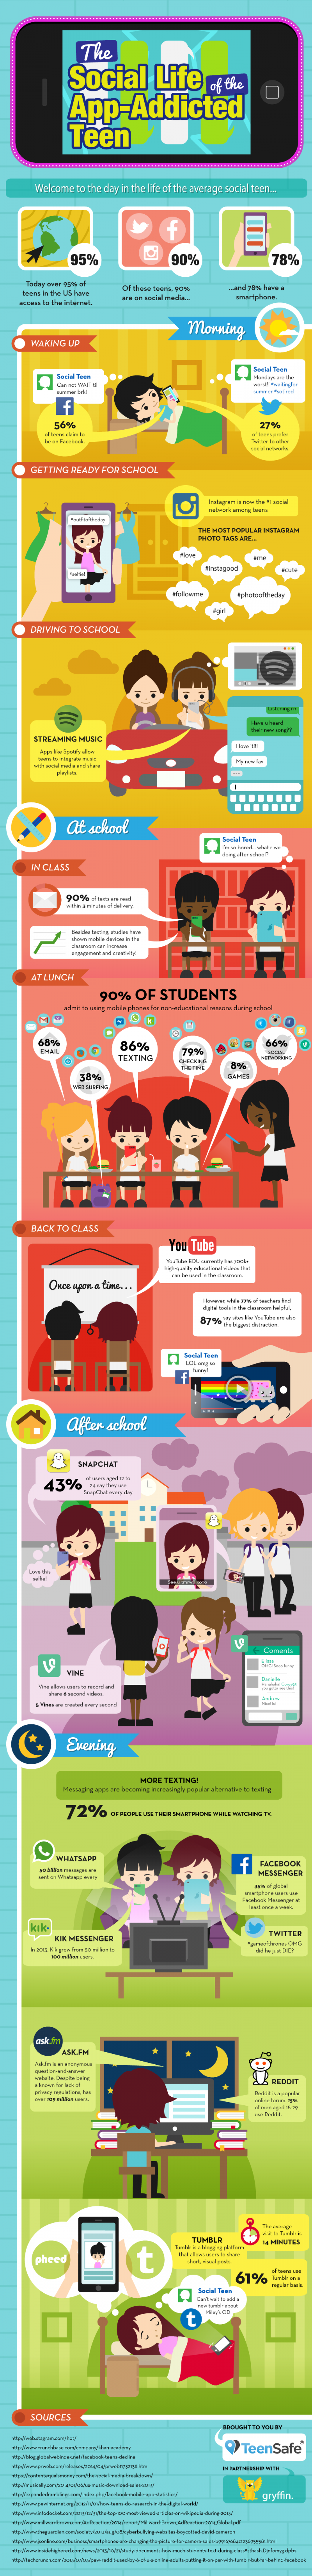 The Social Life of the App Addicted Teen Infographic